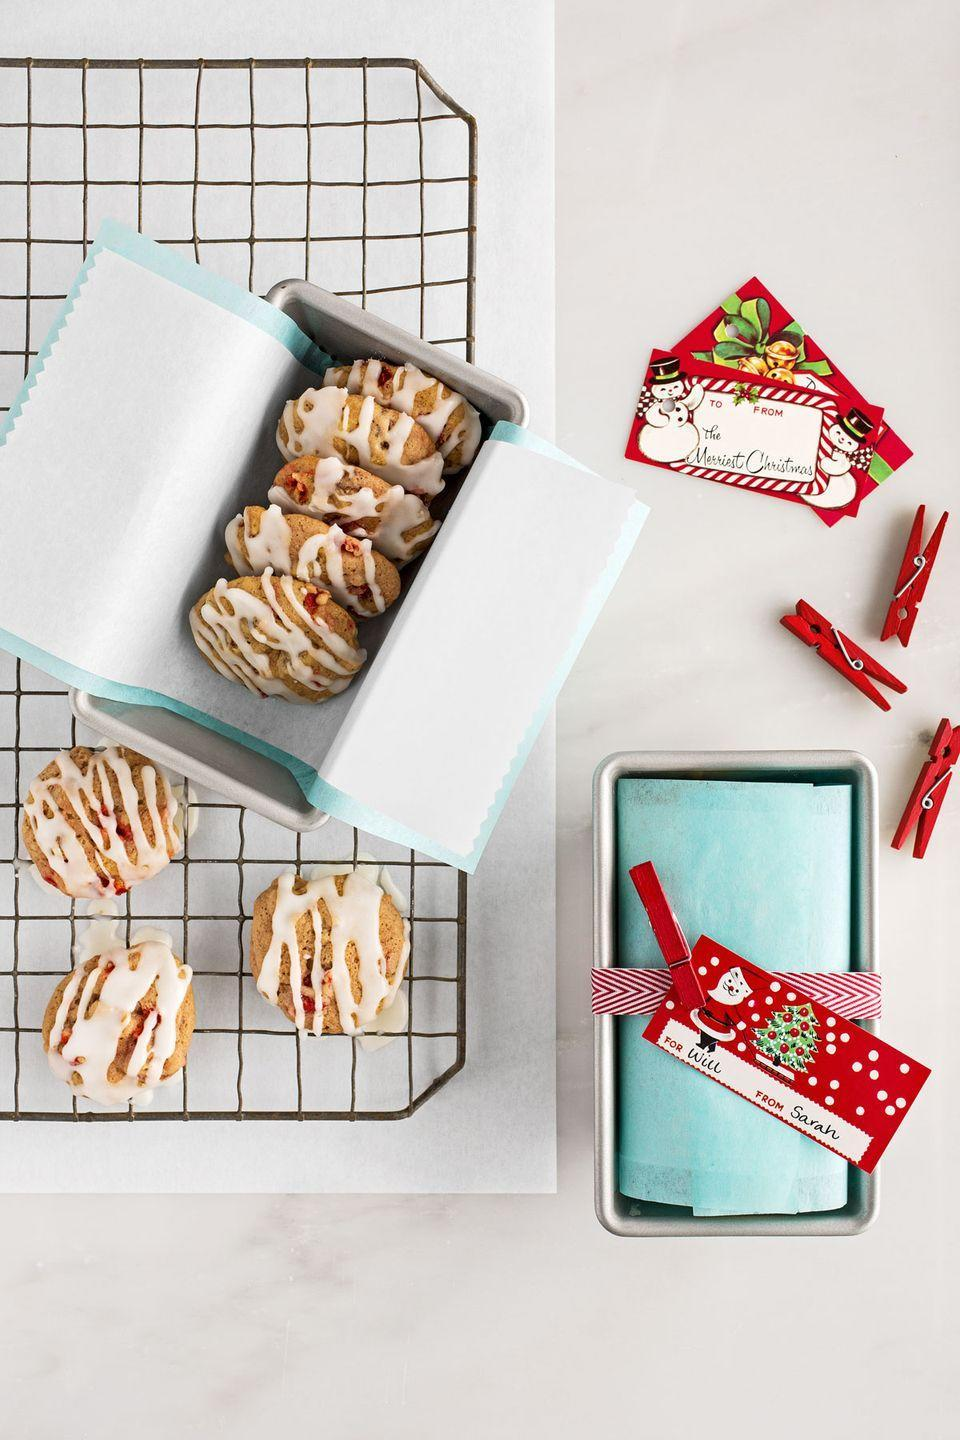 """<p>Line a mini loaf pan, with plain tissue paper then wax paper. Add cookies, fold over paper, then wrap with ribbon and attach a card with a mini clothespin.</p><p><strong><a href=""""https://www.countryliving.com/food-drinks/recipes/a36899/fruitcake-cookies/"""" rel=""""nofollow noopener"""" target=""""_blank"""" data-ylk=""""slk:Get the recipe"""" class=""""link rapid-noclick-resp"""">Get the recipe</a>.</strong></p><p><a class=""""link rapid-noclick-resp"""" href=""""https://www.amazon.com/Chicago-Metallic-Commercial-Non-Stick-Mini/dp/B003YKGQVK/?tag=syn-yahoo-20&ascsubtag=%5Bartid%7C10050.g.647%5Bsrc%7Cyahoo-us"""" rel=""""nofollow noopener"""" target=""""_blank"""" data-ylk=""""slk:SHOP MINI LOAF PANS"""">SHOP MINI LOAF PANS</a></p>"""